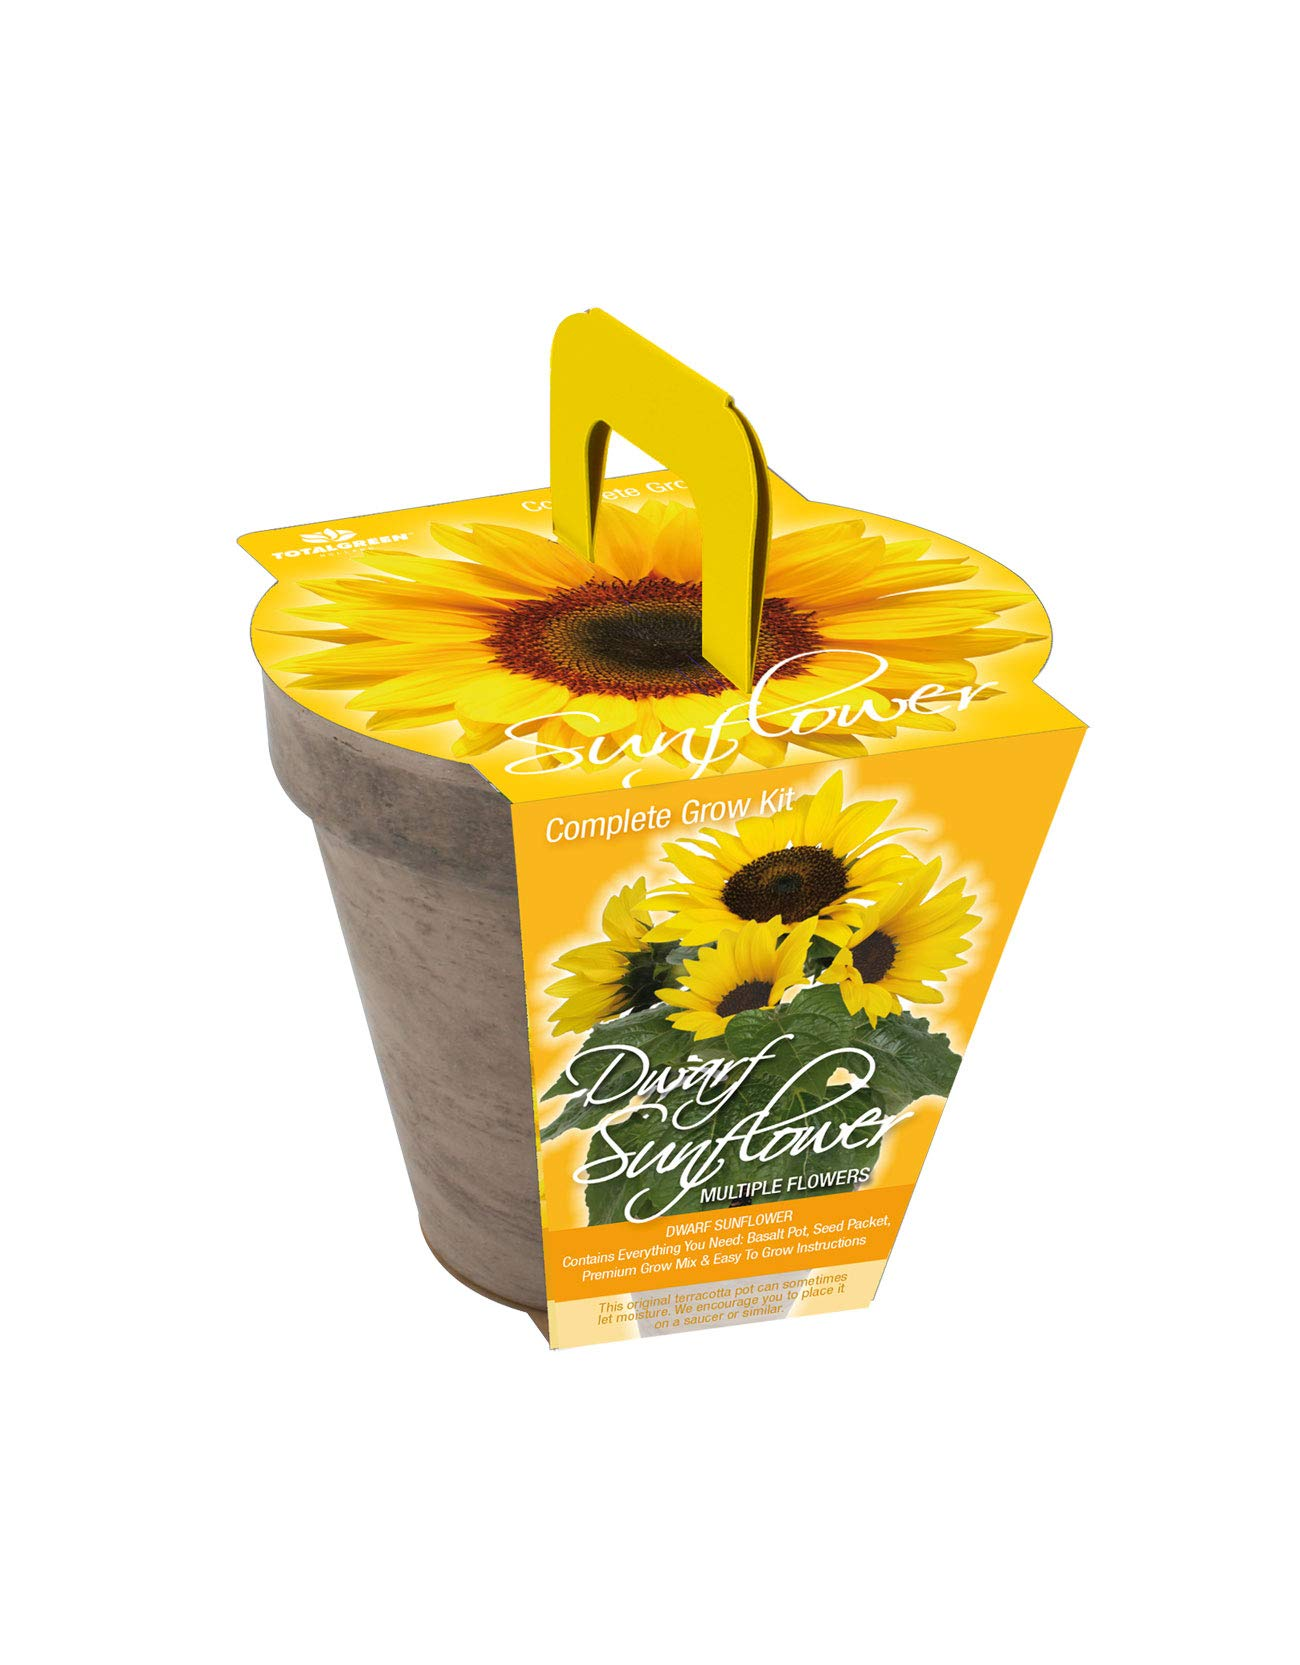 Quality Sunflower Grow Kit | Grow Your Own Unique Dwarf Sunflower from Seed in Just A Few Weeks | Unique Basalt Pot, Non-GMO Mother's Day Gardening Kit with Easy Instructions | by TotalGreen Holland (Image #3)